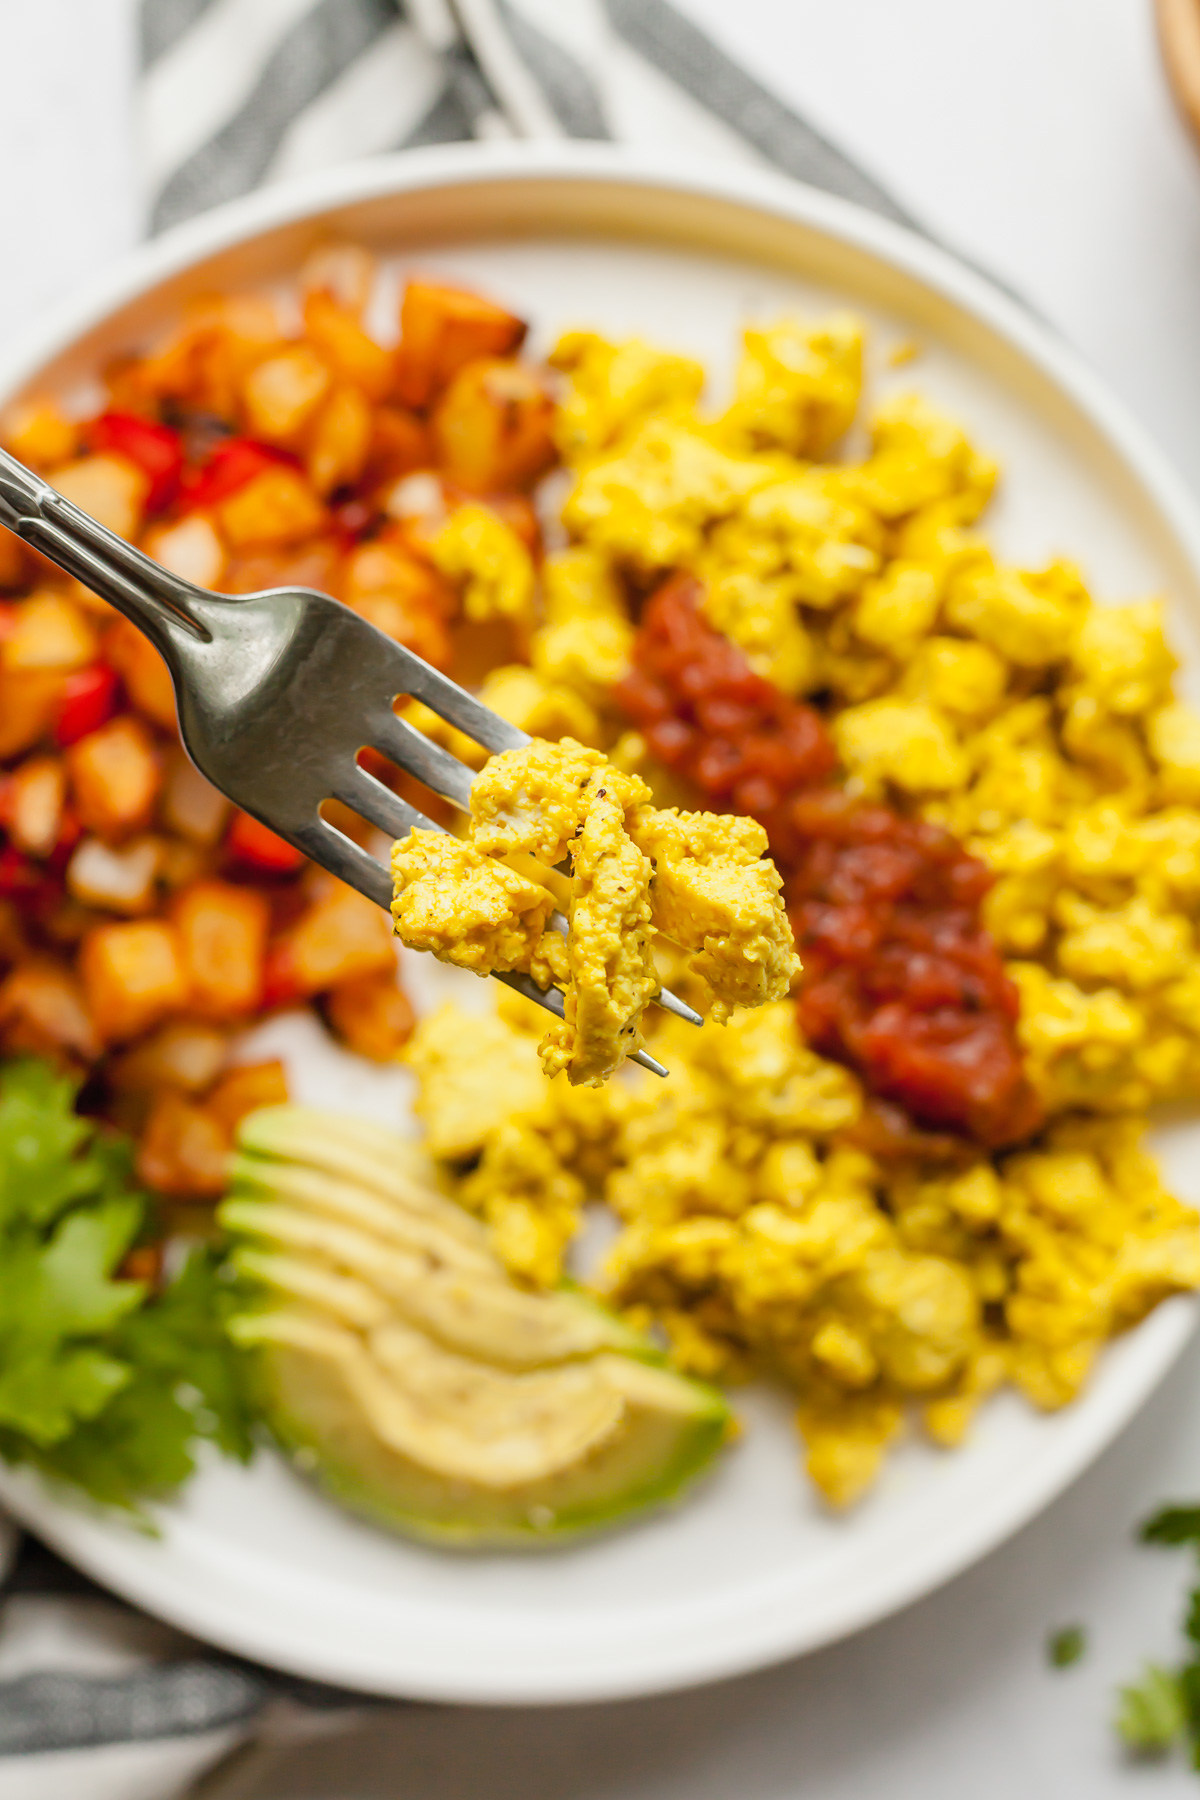 tofu scrambled eggs on a fork above a plate of more scrambled tofu, home fries, and avocado slices